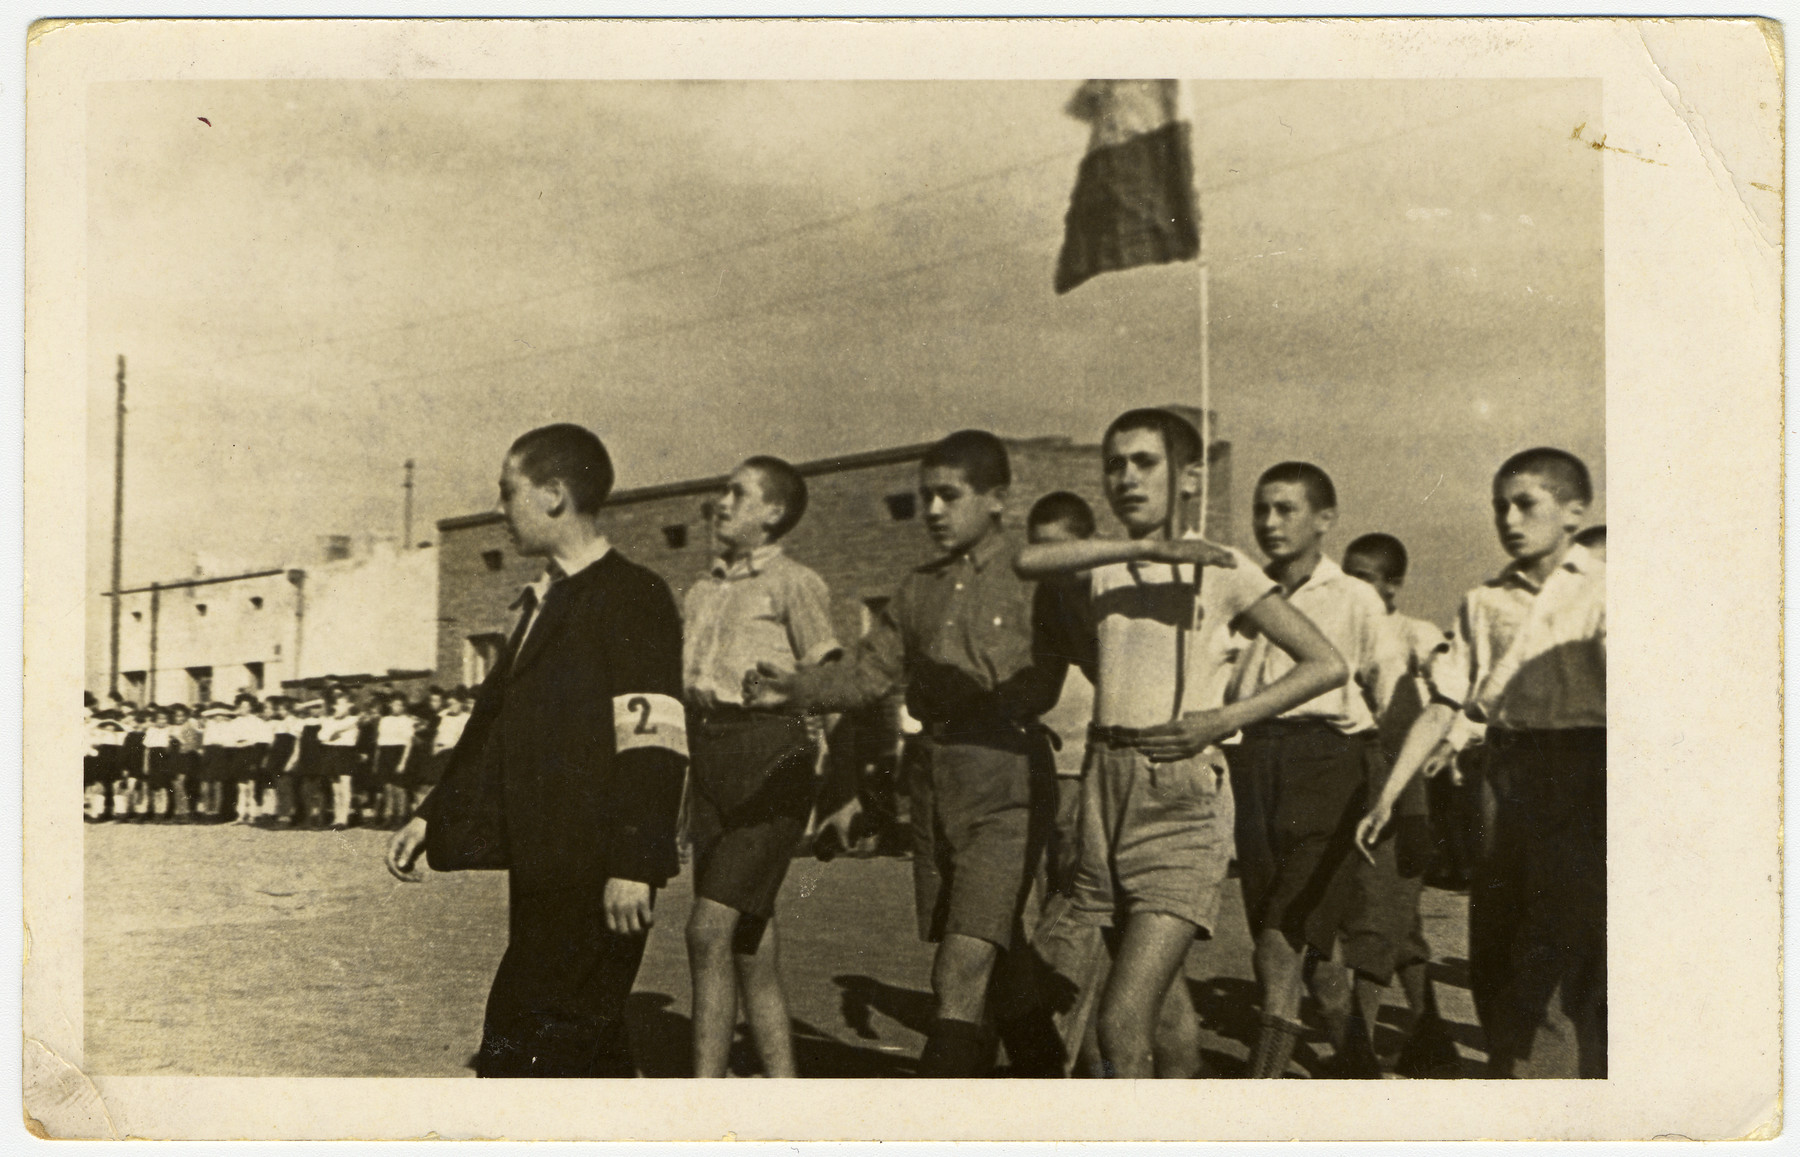 Young teenage boys, in the Marysin colony, parade with a flag, in front of Rumkowski.